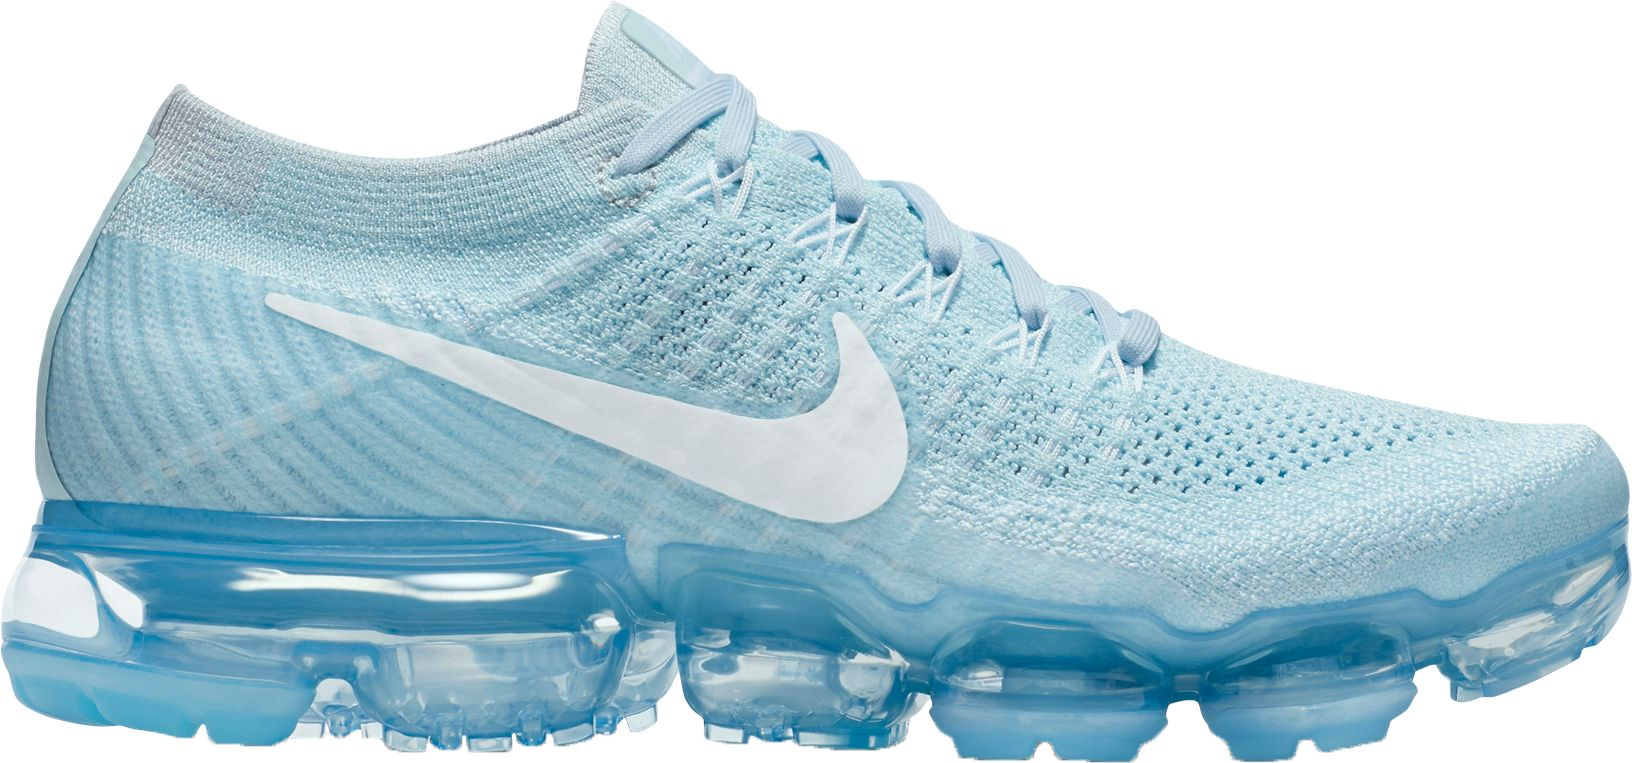 WMNS NIKE AIR VAPORMAX. Nike (MY) Cheap Nike Air Vapormax